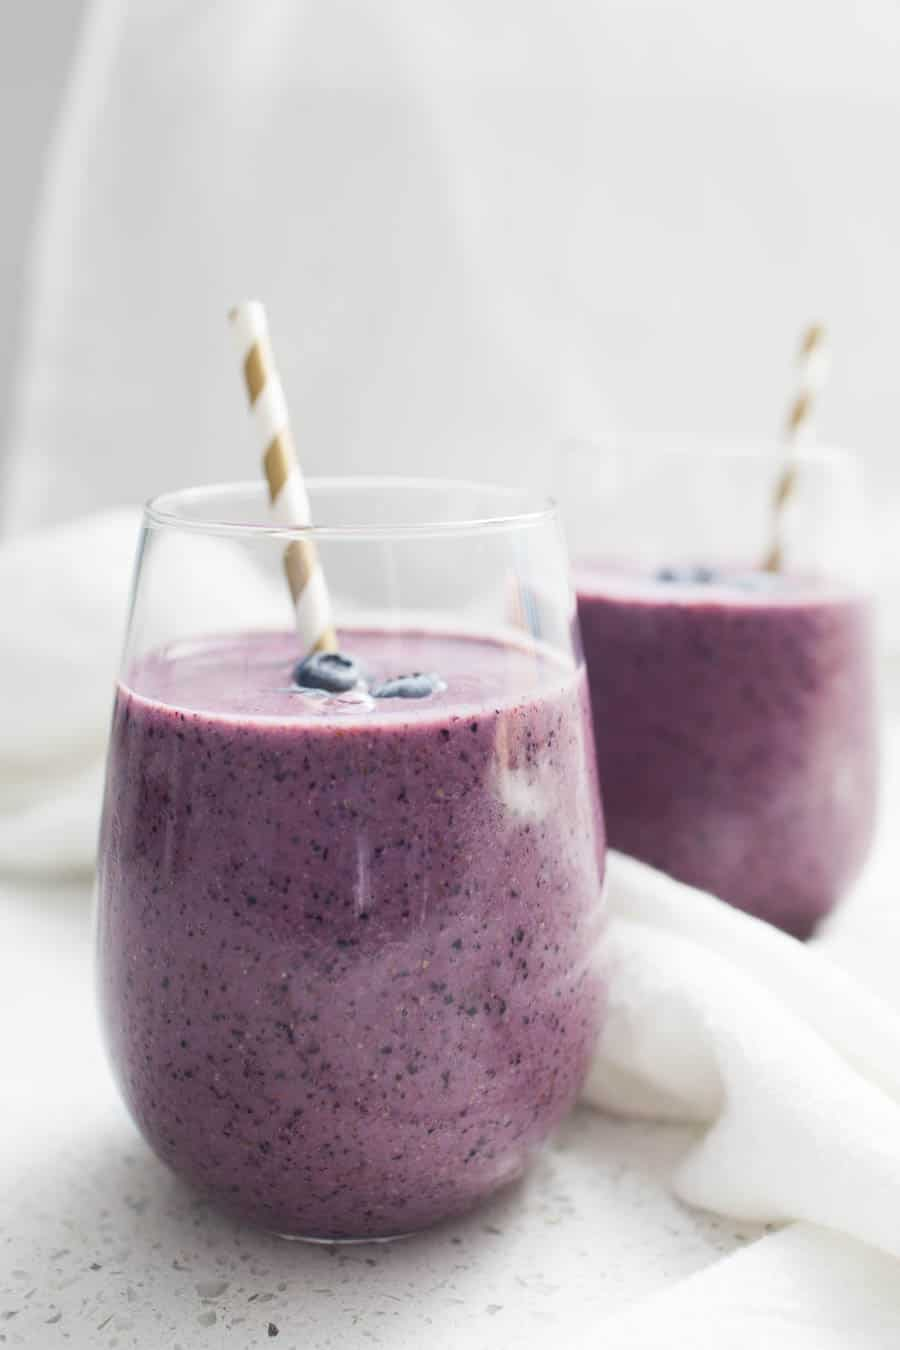 Smoothies are the perfect breakfast or snack to pack in tons of flavor and protein! Made with frozen blueberries, plain greek yogurt, spinach, flax seed and sweetened with a pinch of honey, this Blueberry Greek Yogurt Smoothie is perfect for the whole family.